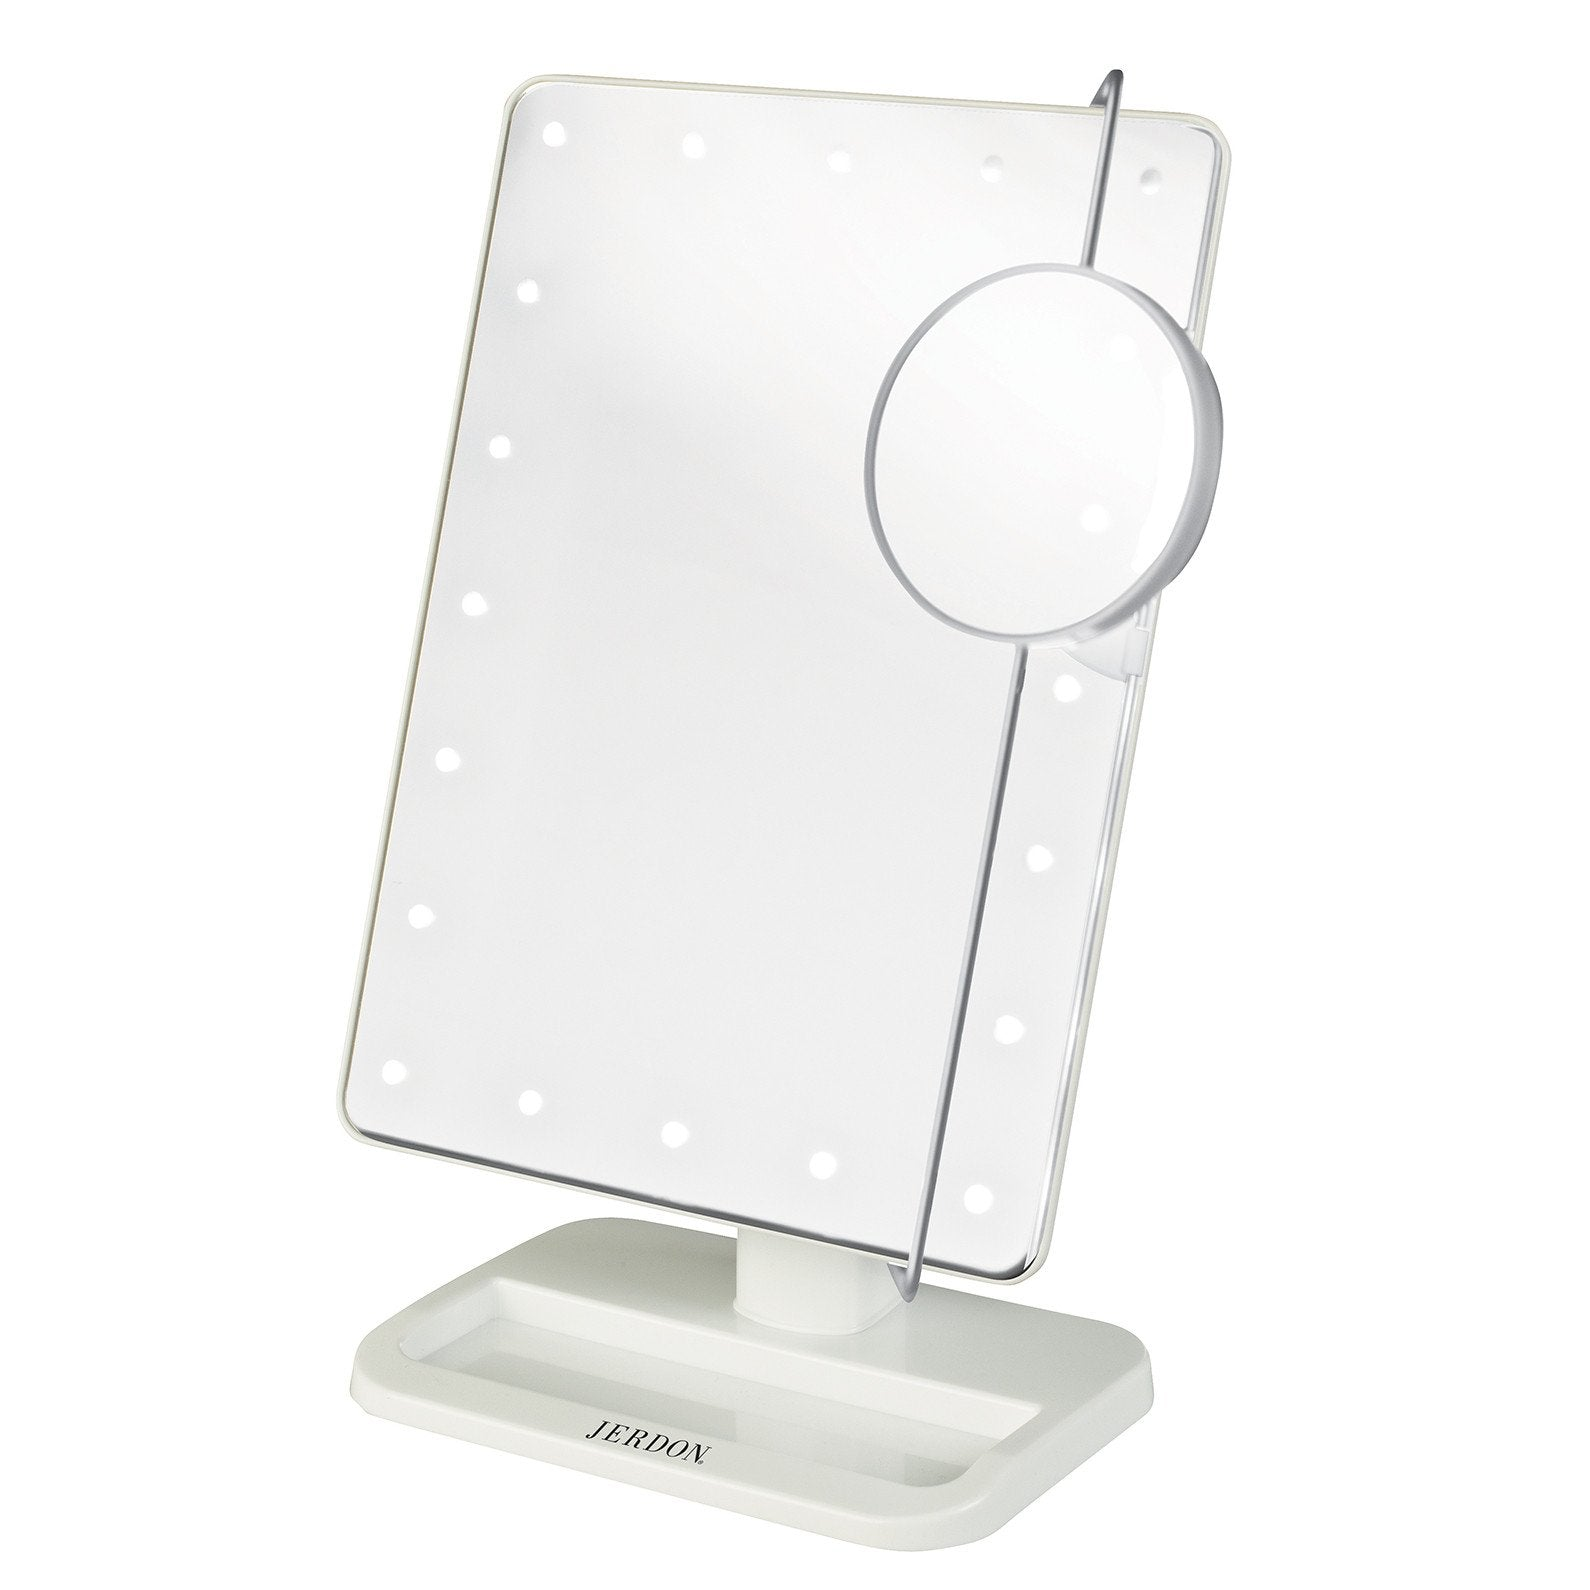 Led Lighted Battery Operated Makeup Mirror Jerdon Style